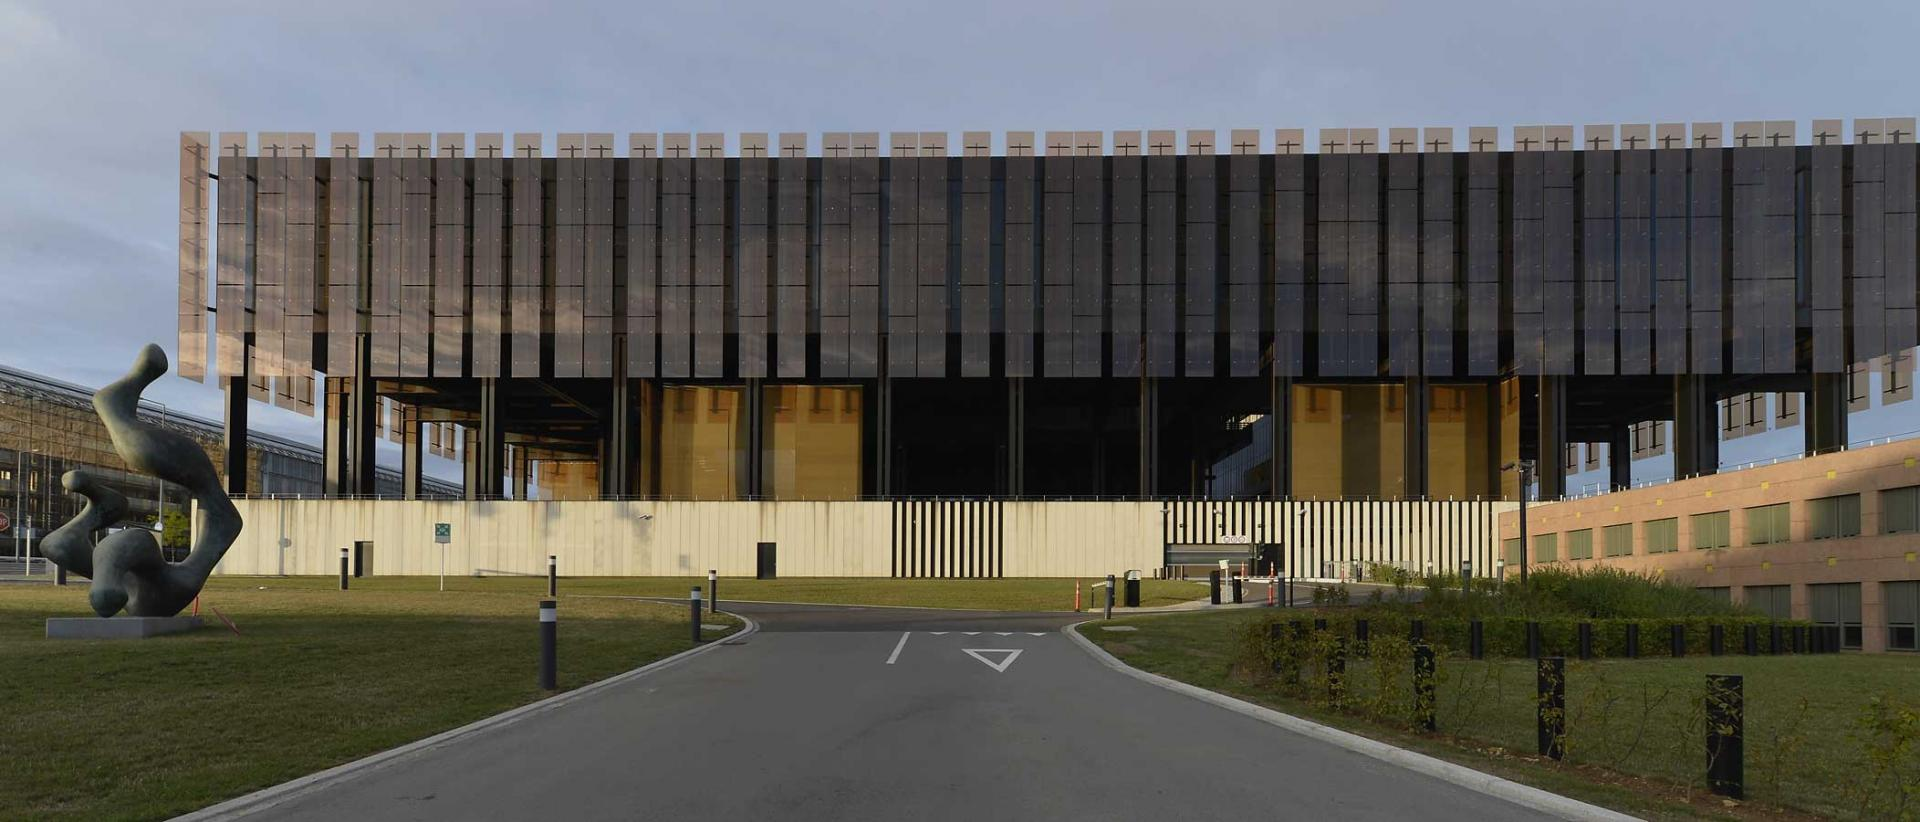 European Court of Justice - Extension D - Kirchberg - Luxembourg - Image #2